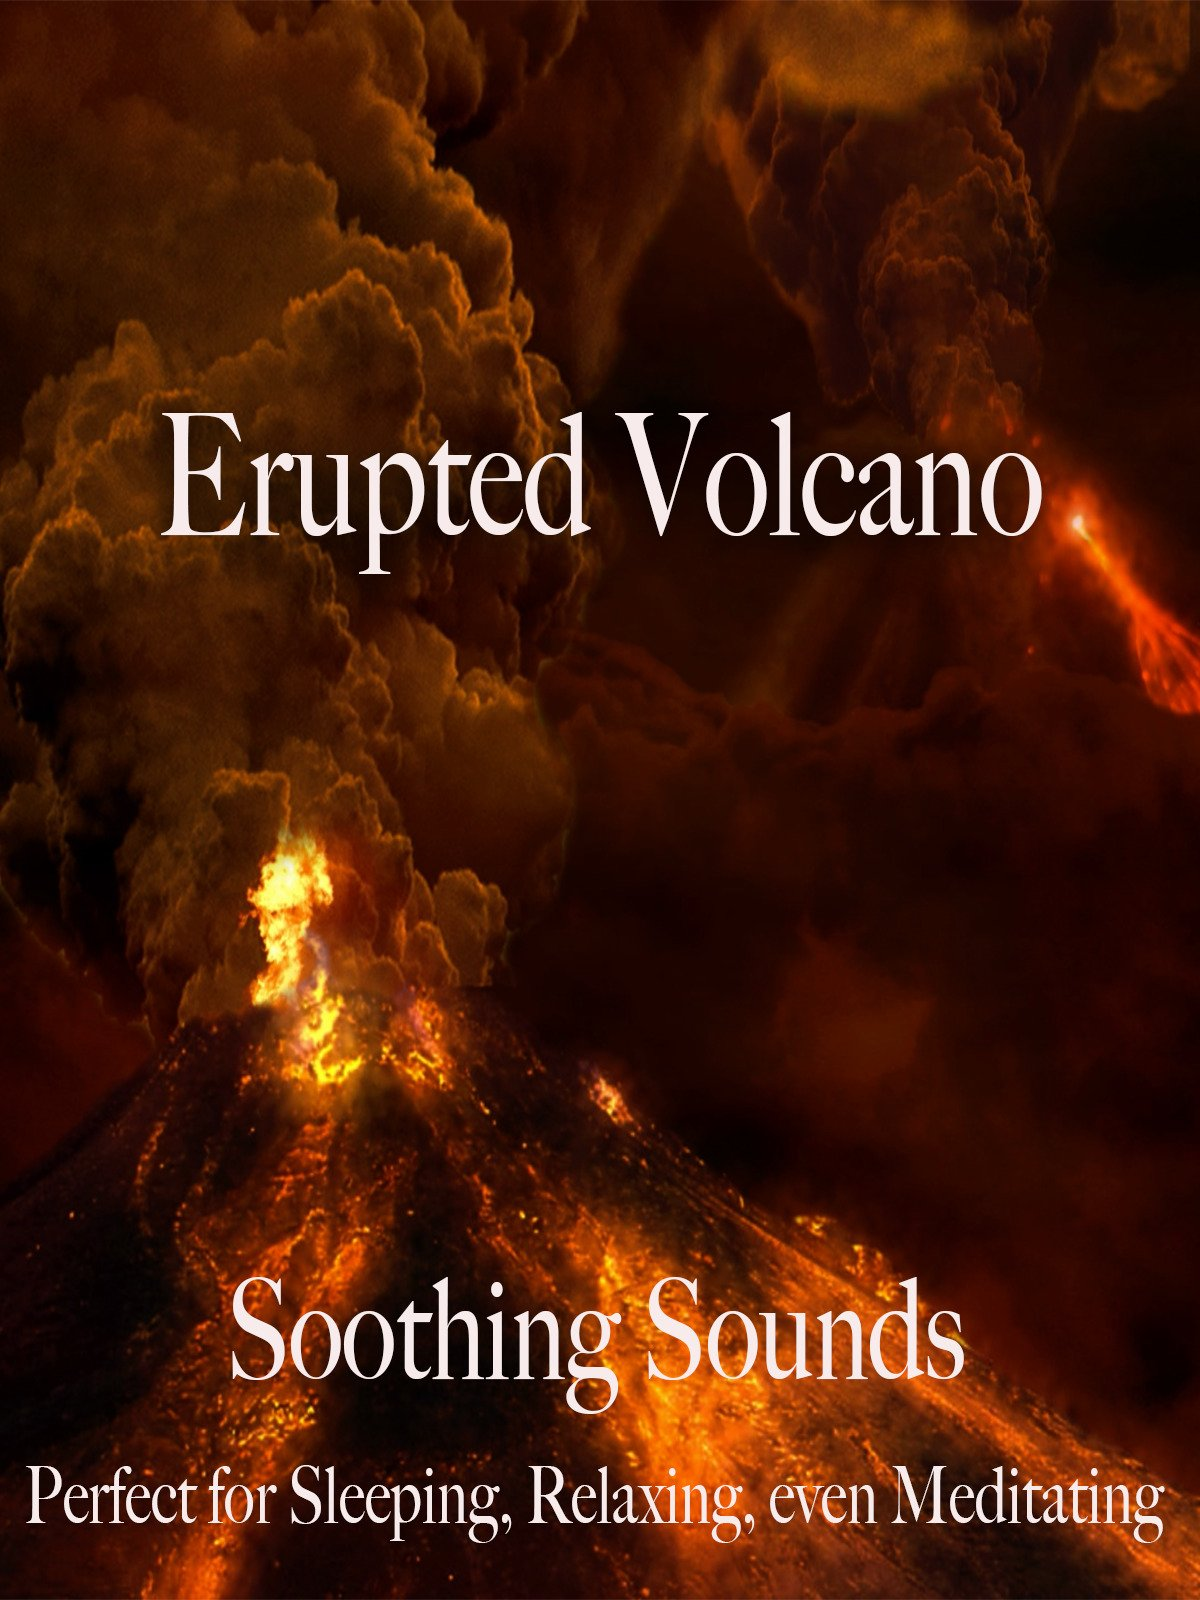 Erupted Volcano Soothing Sounds Perfect Sleeping, Relaxing, even Meditating